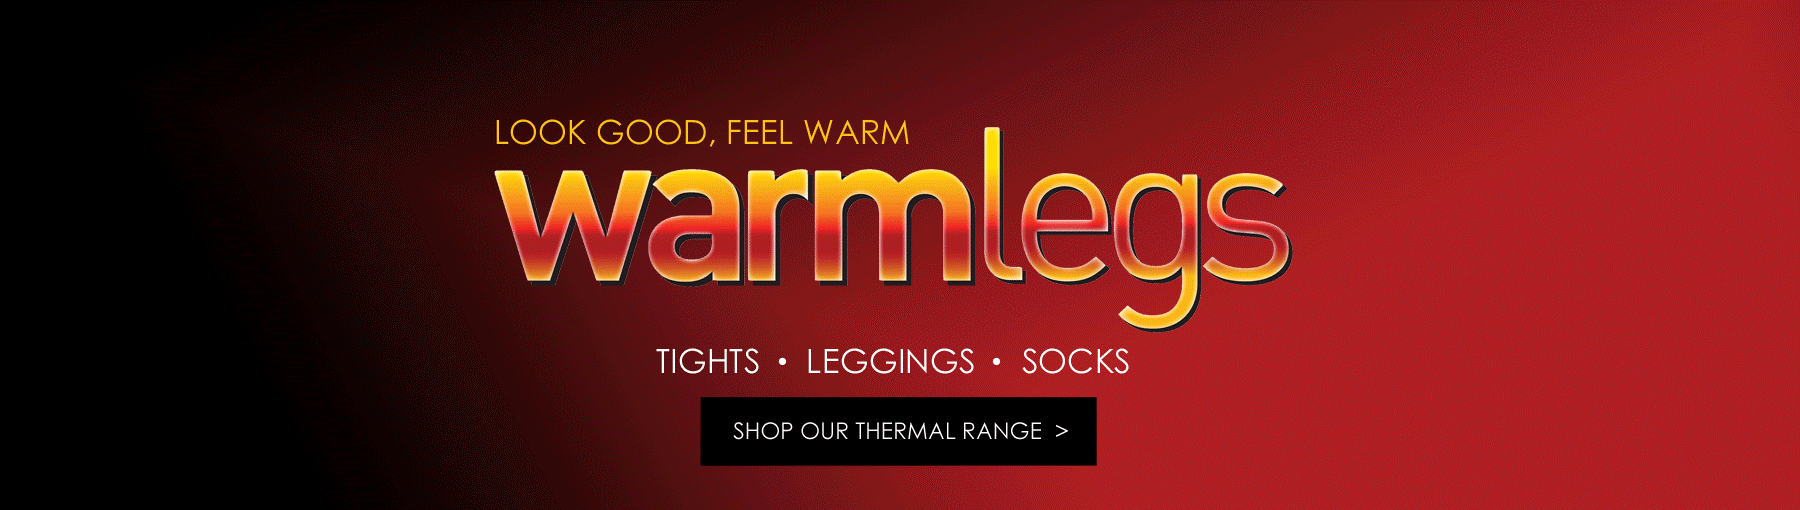 Warmlegs